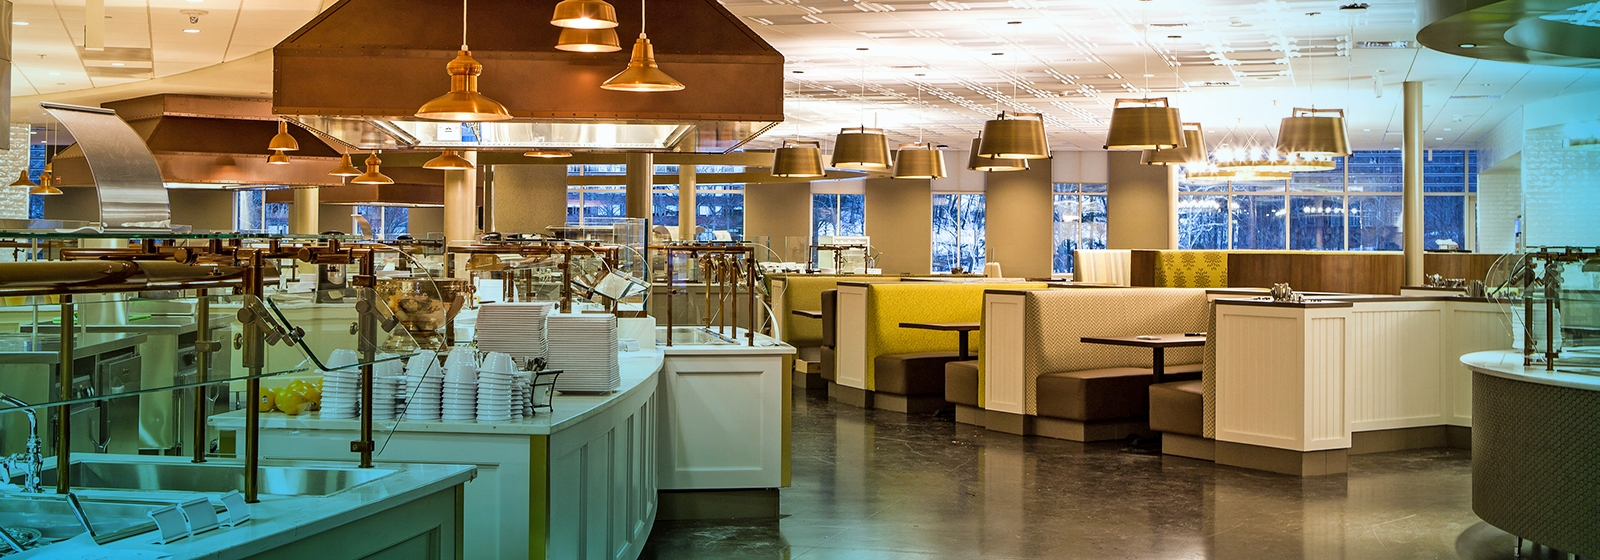 Photo of the inside of the new Dining Commons